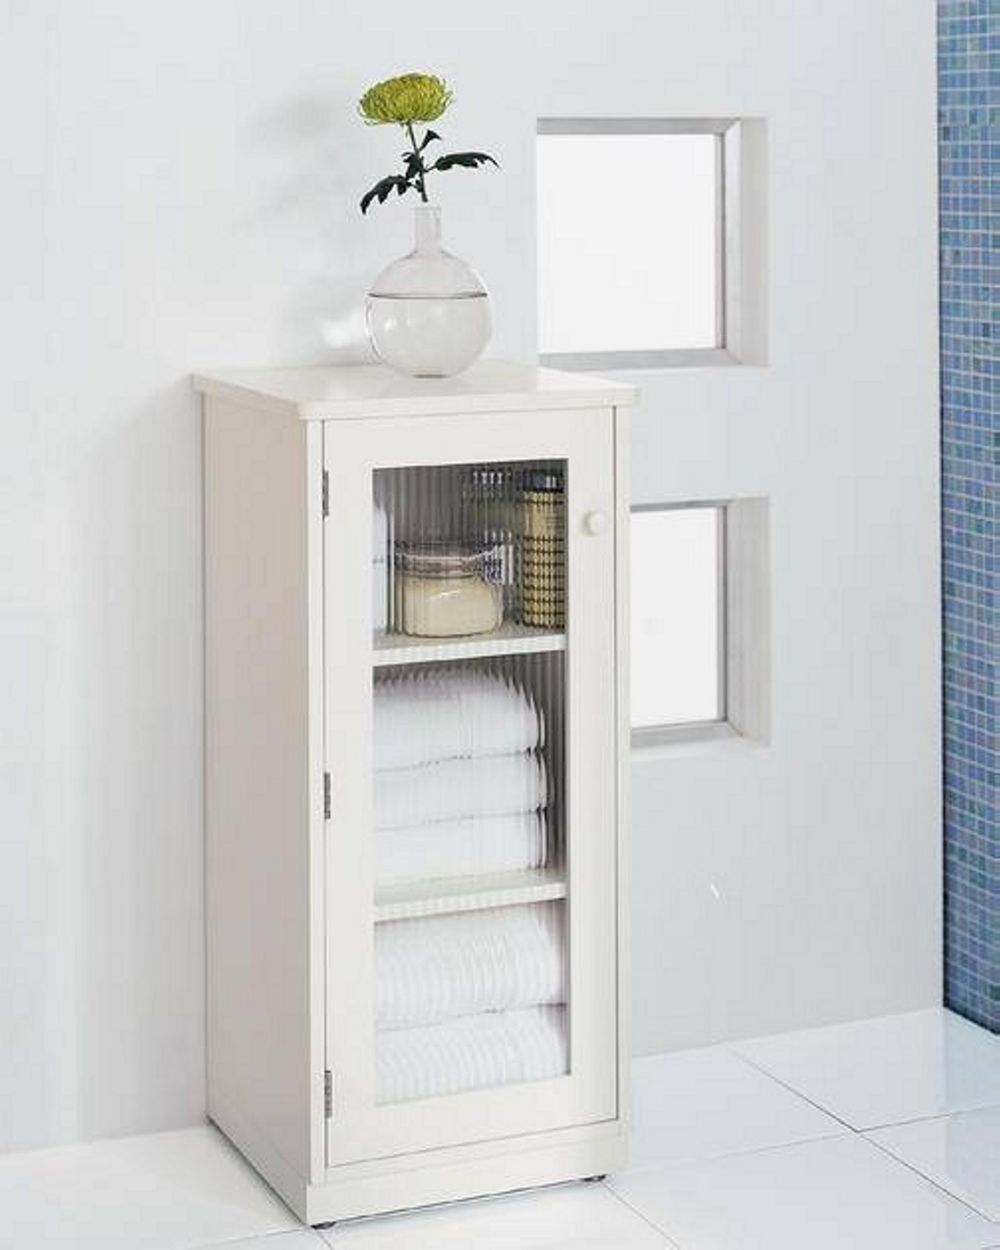 simpler linen tower design in pure white color with the glass accent applied on the door bathroom linen tower – space saver storage idea